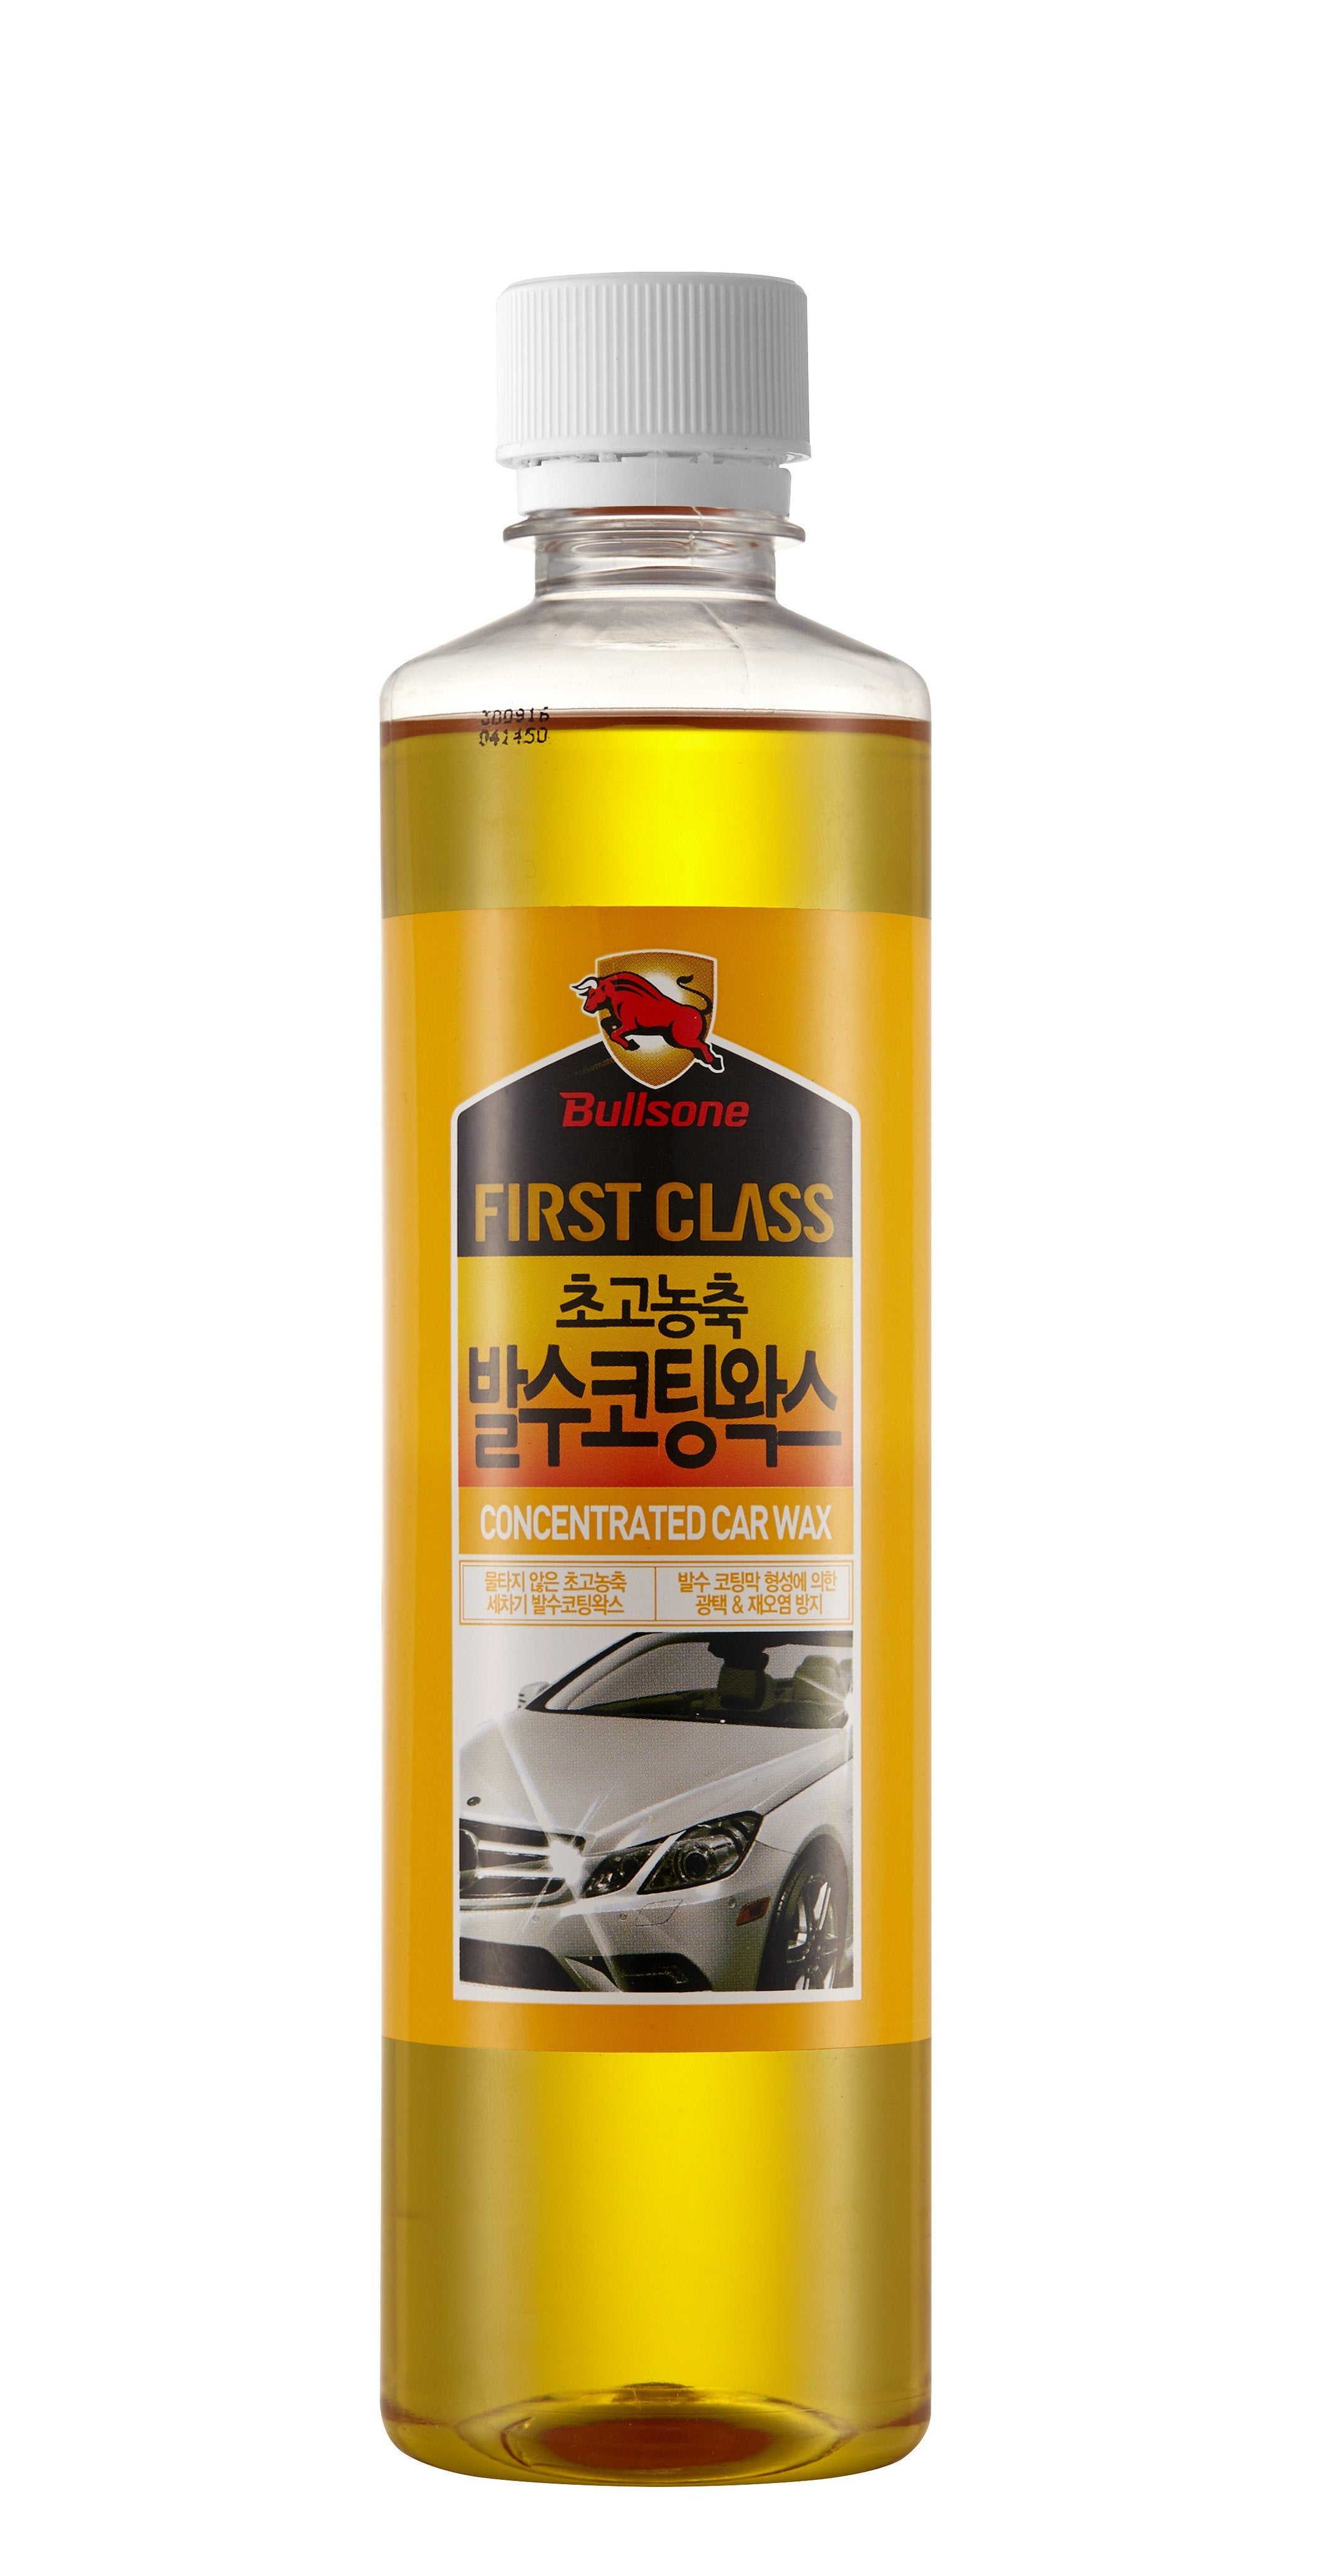 https://cdn.shopify.com/s/files/1/0723/4723/products/First_Class_High_Concentrated_for_Car_Washing_Shop_-_Rain_Repellent_Coating_Wax_500ml_16.91oz_Upgraded_Model.jpg?v=1501213484